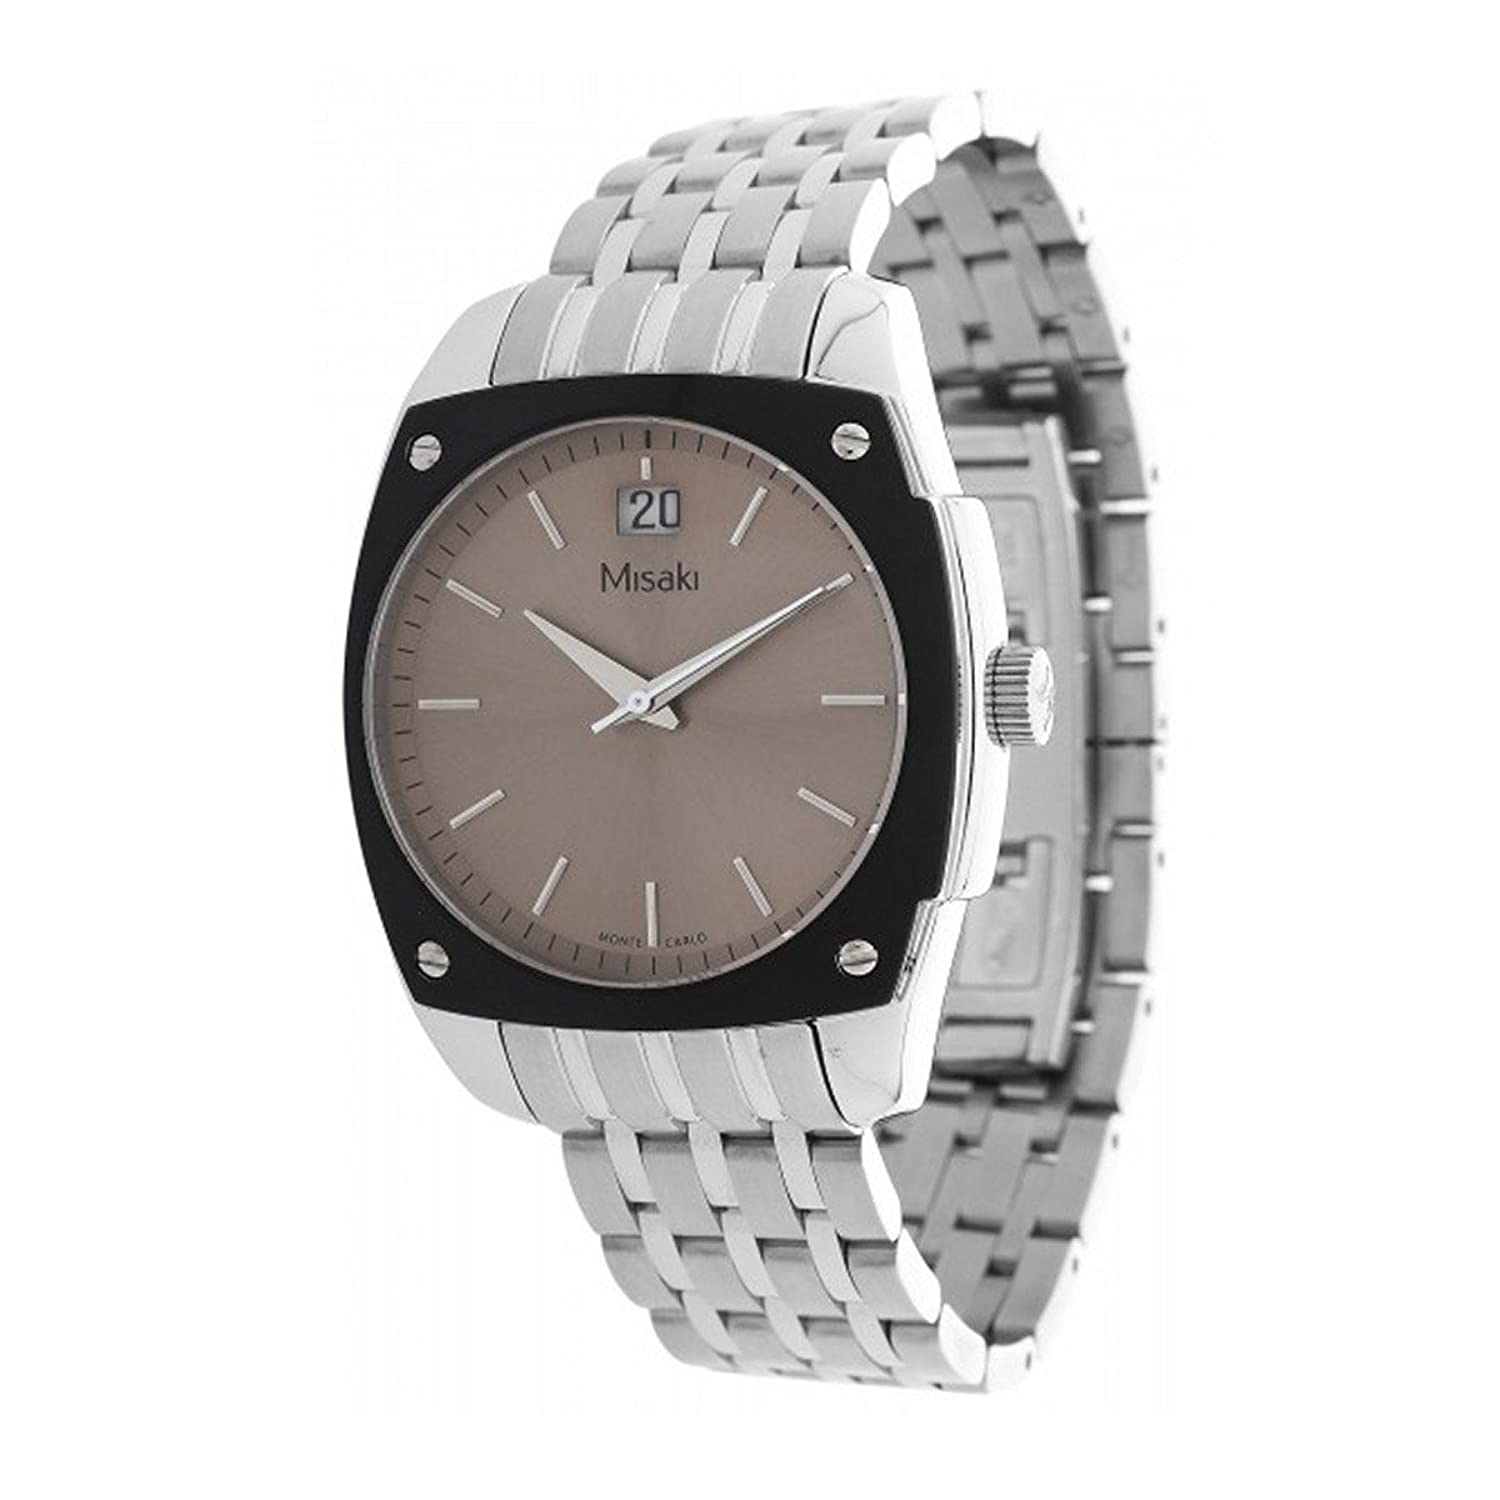 dial watches misaki s mesh white the minimalist fossil men watch